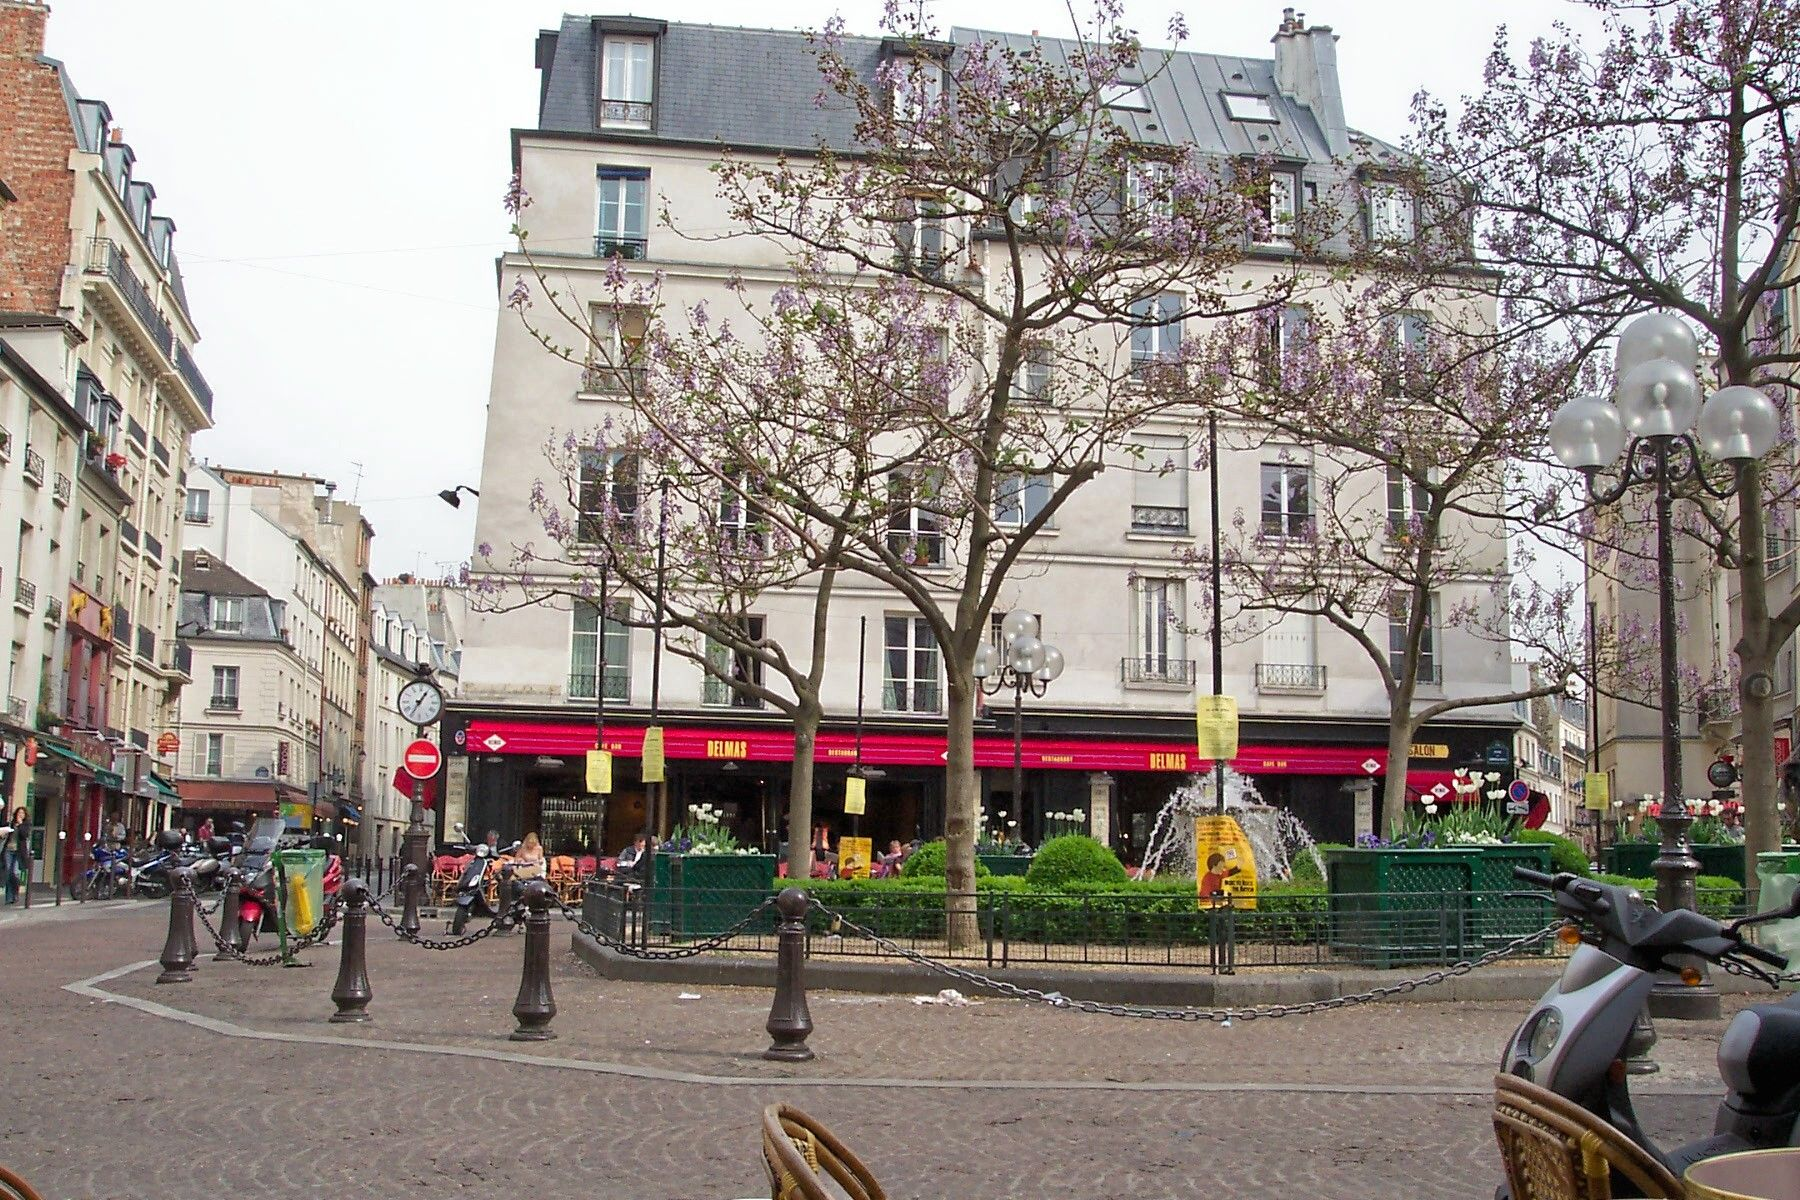 "Chapter 8 - Bill and I were enjoying a peaceful walk through Paris.  ""We turned to the right off the Place Contrescarpe, walking along smooth narrow streets with high old houses on both sides"" (83). We continued walking along this way for quite some time enjoying the beautiful scenery."